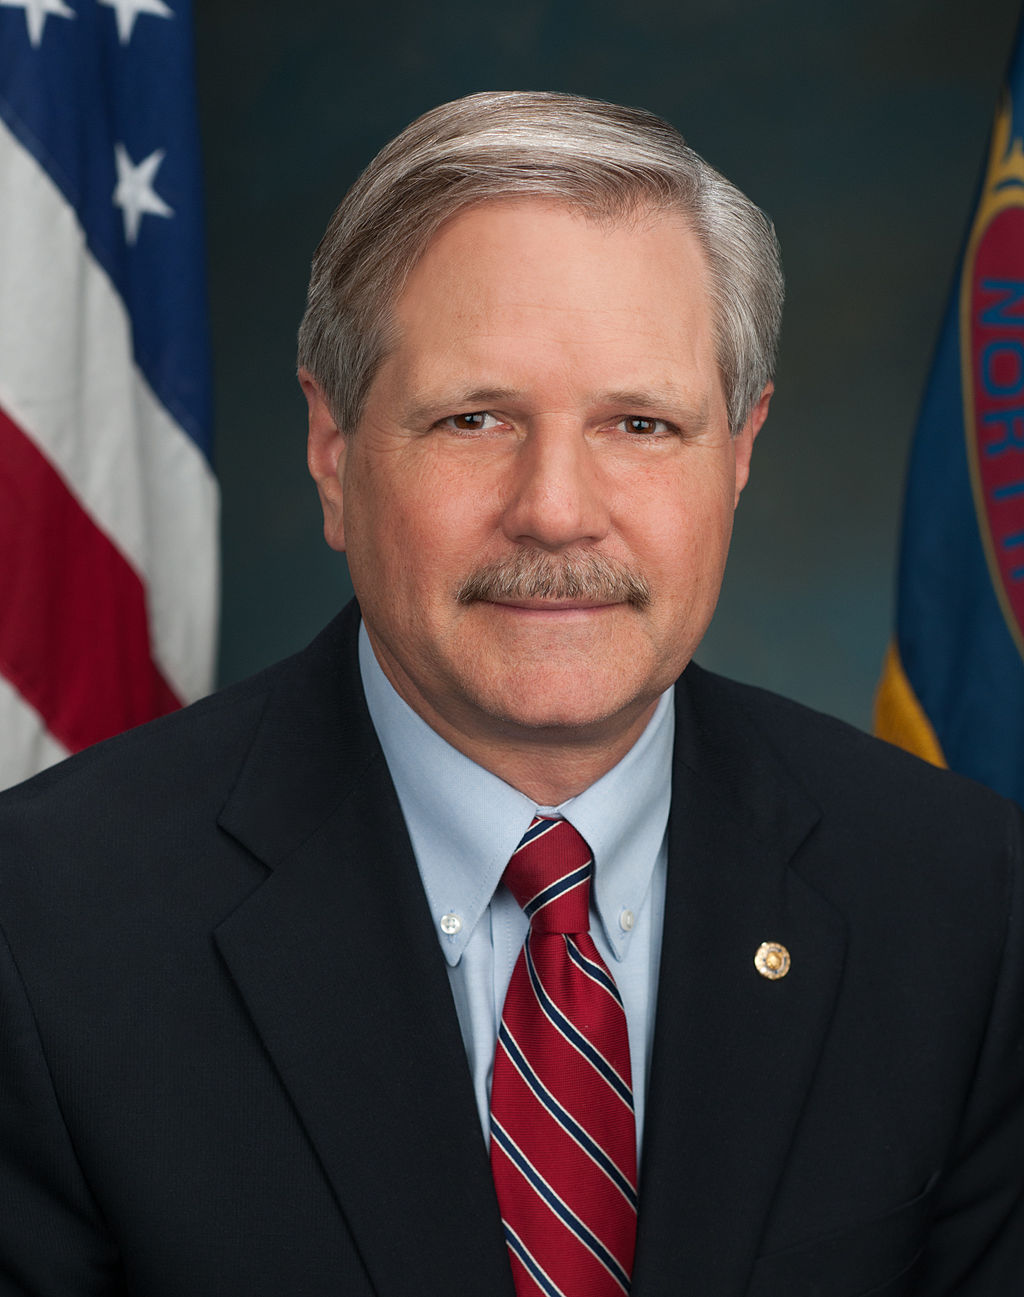 Asking the Experts: U.S. Senator John Hoeven on ag, tech and federal initiatives